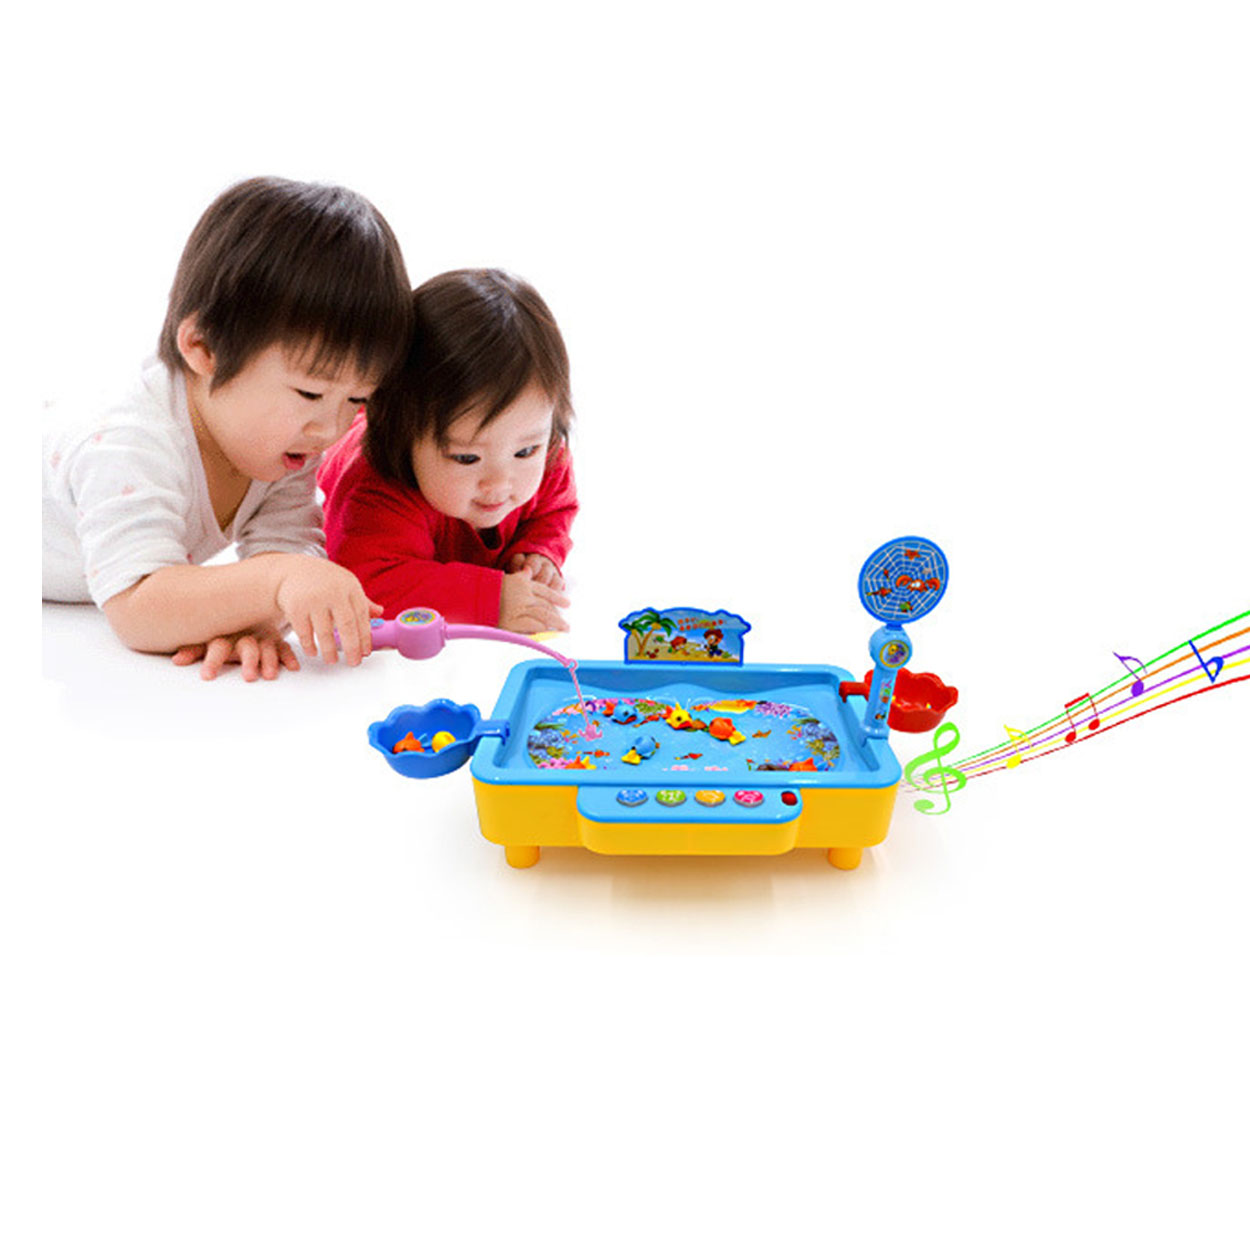 ФОТО Electronic Magnetic Fishing Toy Fish Magnet Toy With Music Muscial Magnetic Fishing Game Electric Plastic Fish Toys 5222